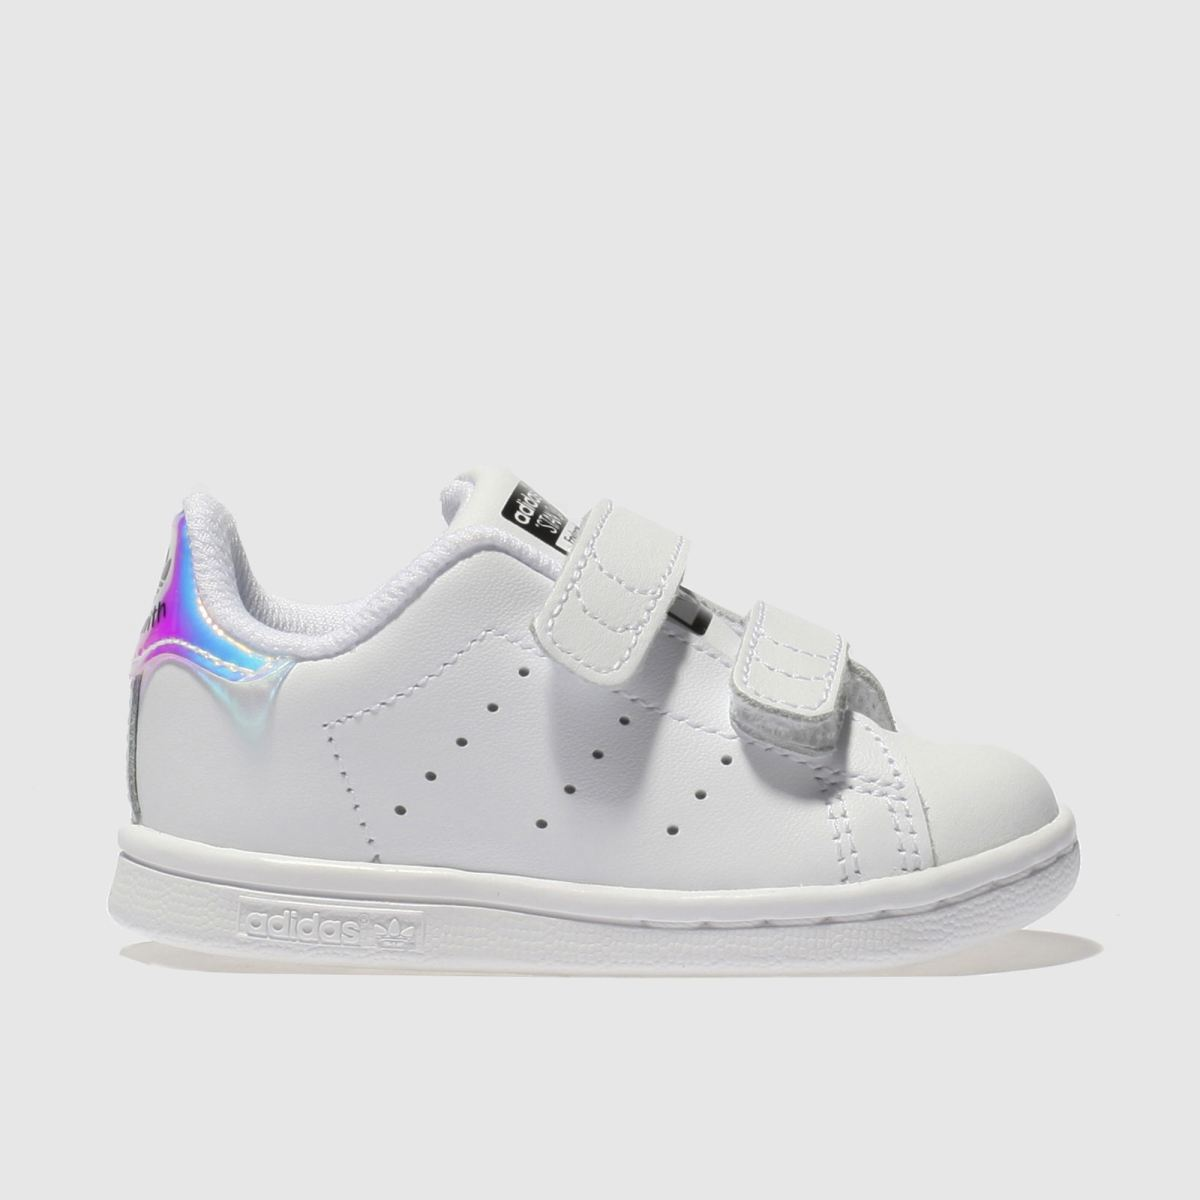 adidas white & silver stan smith Girls Toddler Trainers